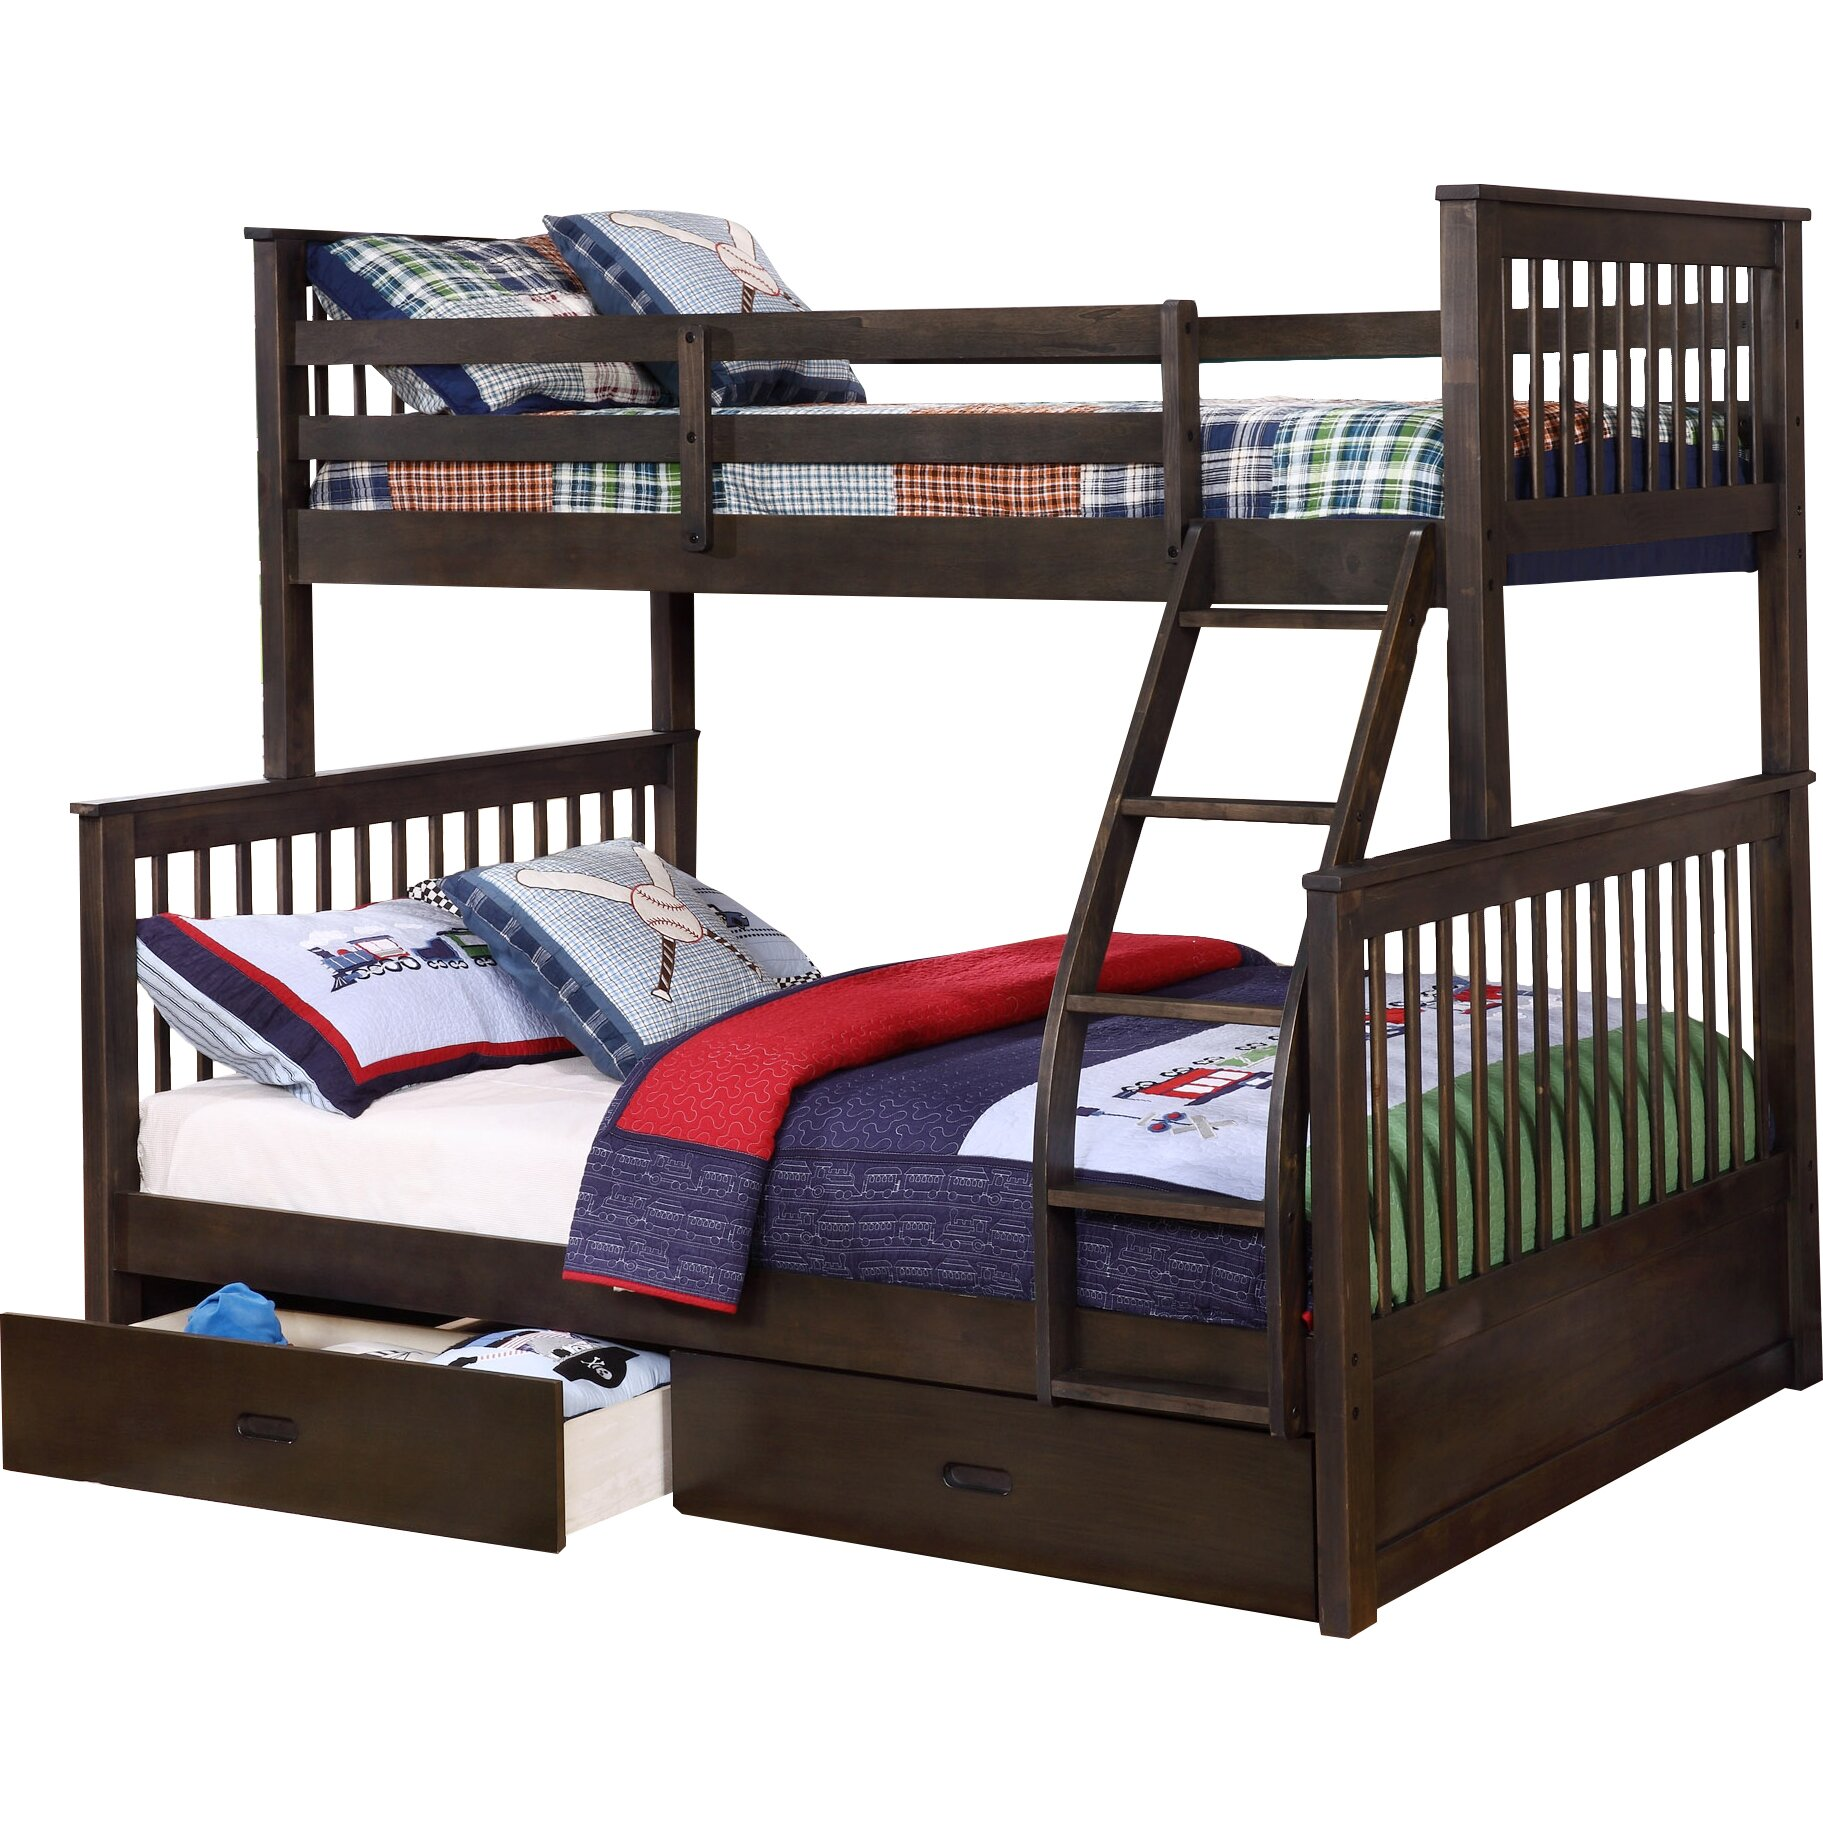 Best 25 Twin Full Bunk Bed Ideas On Pinterest: Wildon Home ® Paloma Mission Twin Over Full Bunk Bed With